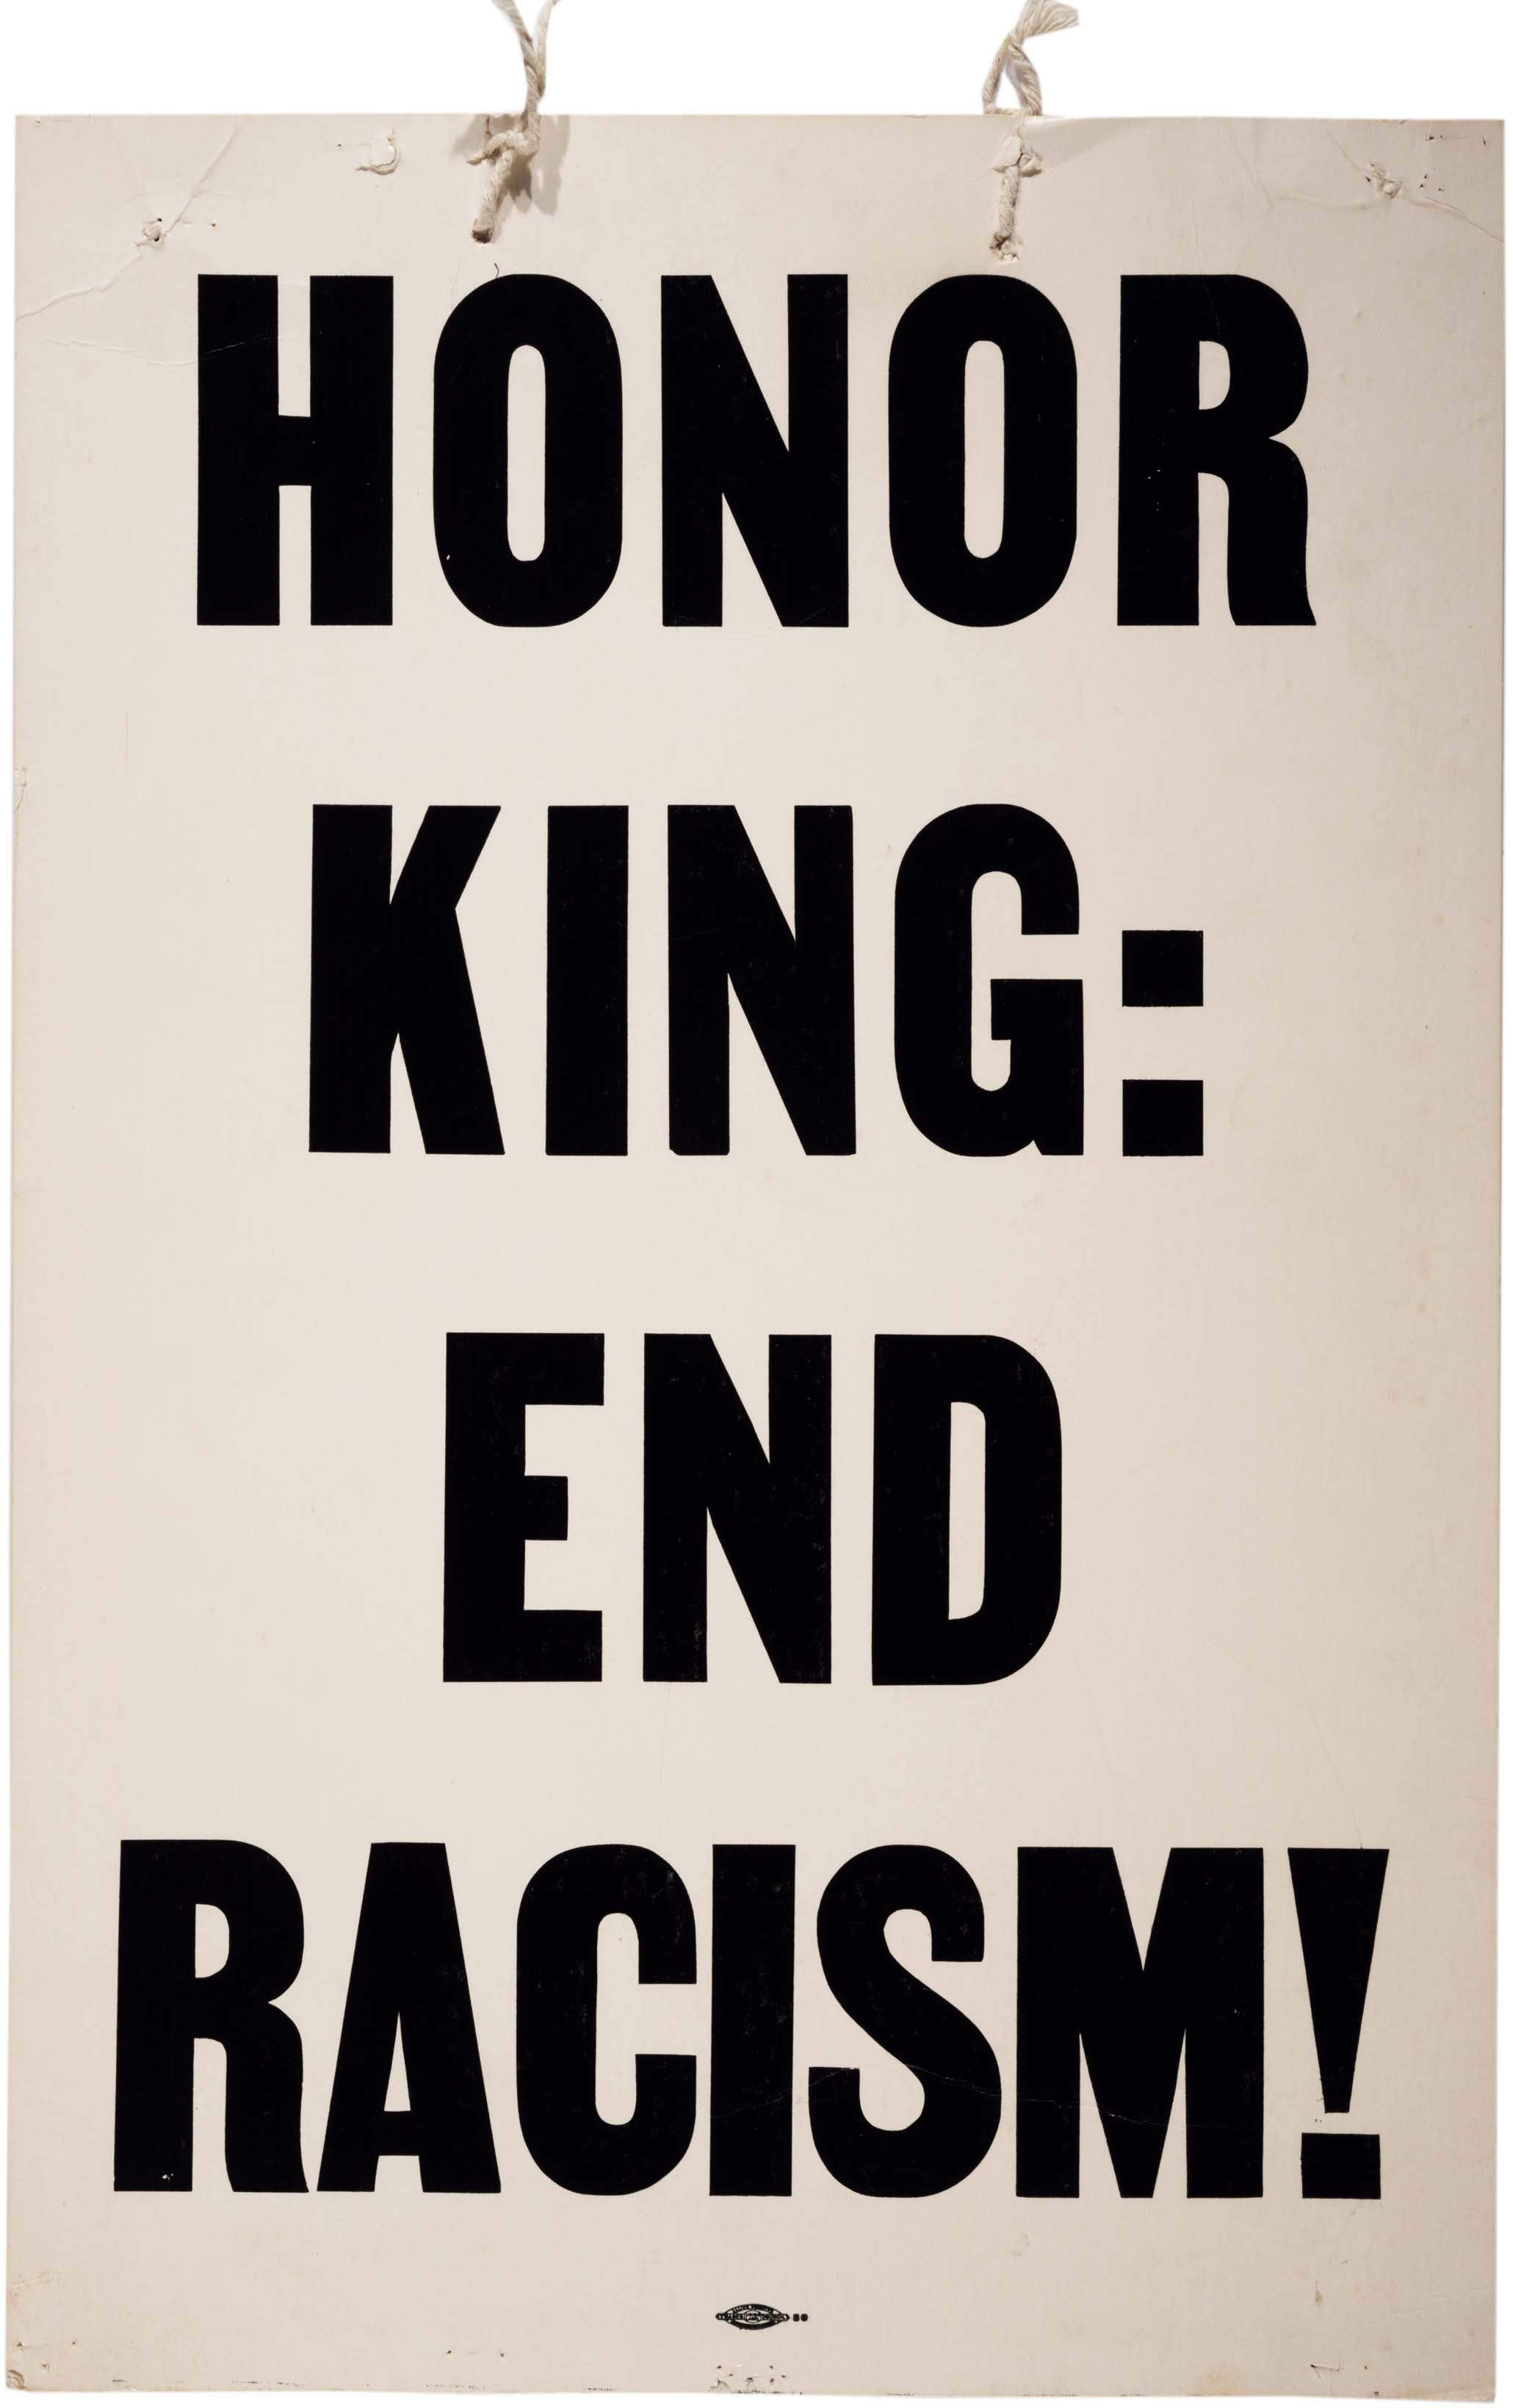 civil rights posters the gilder lehrman institute of honor king end racism broadside 8 1968 gilder lehrman